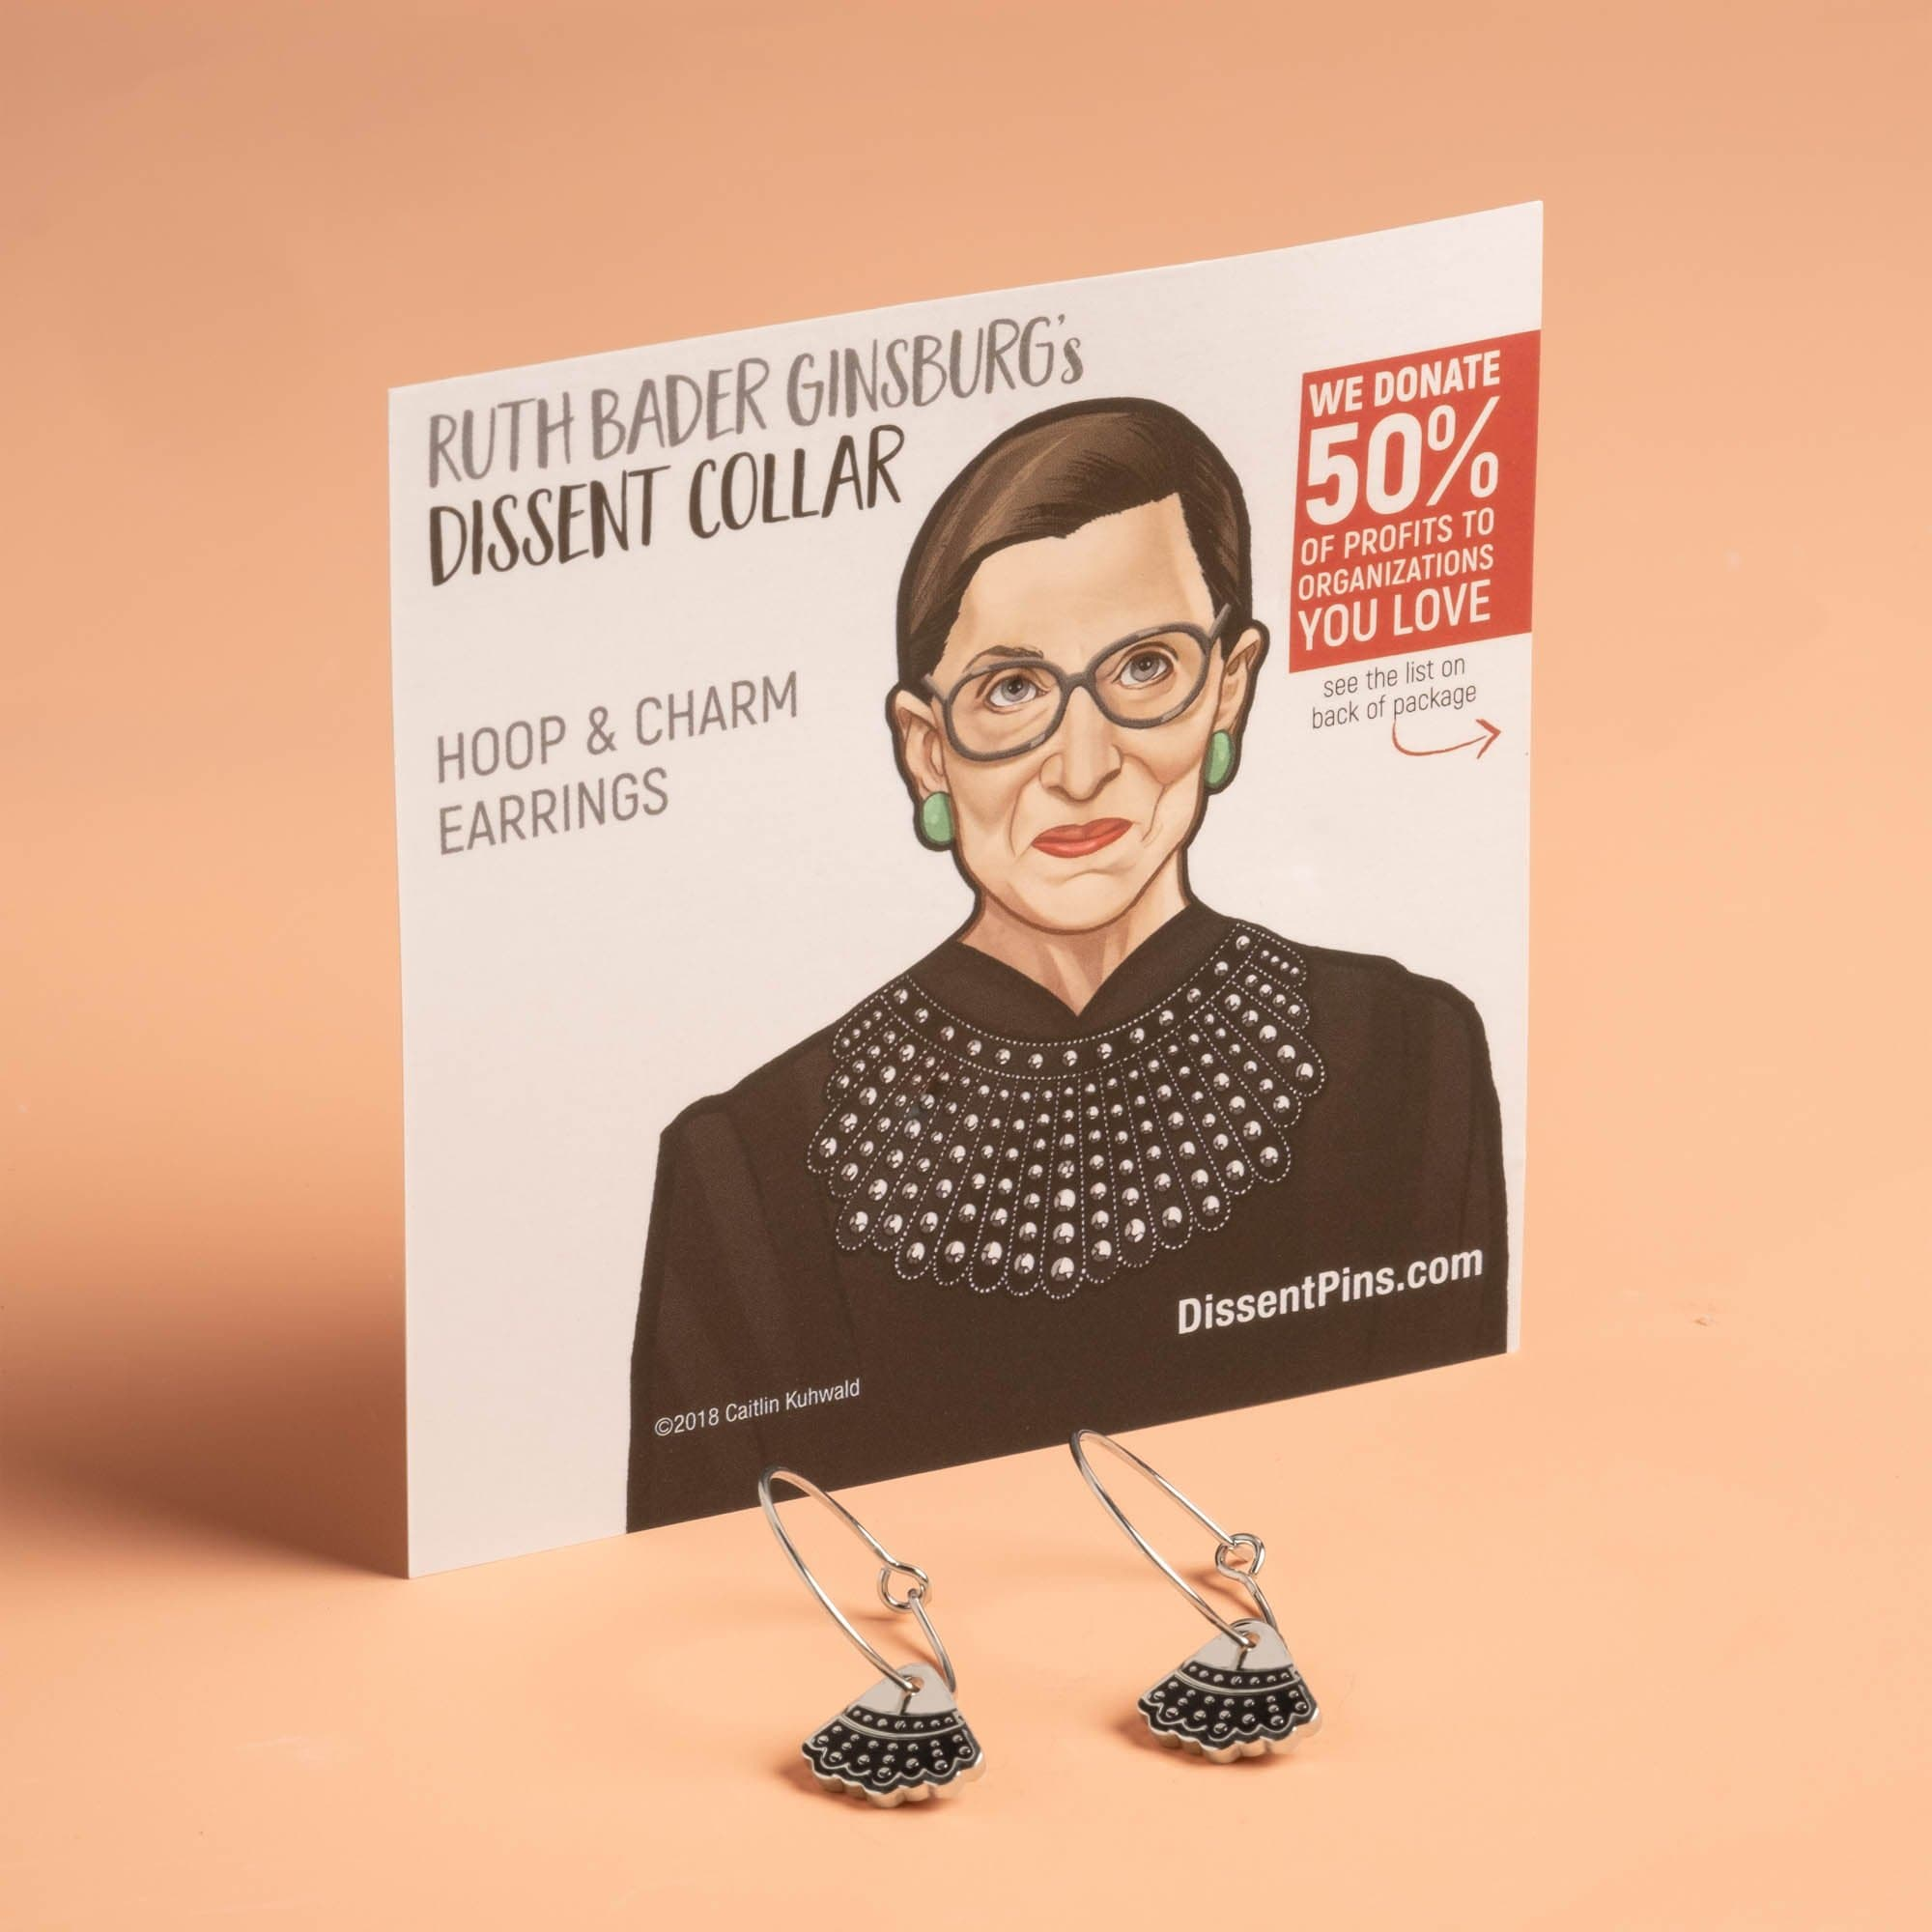 Dissent Collar Hoop and Charm Earrings